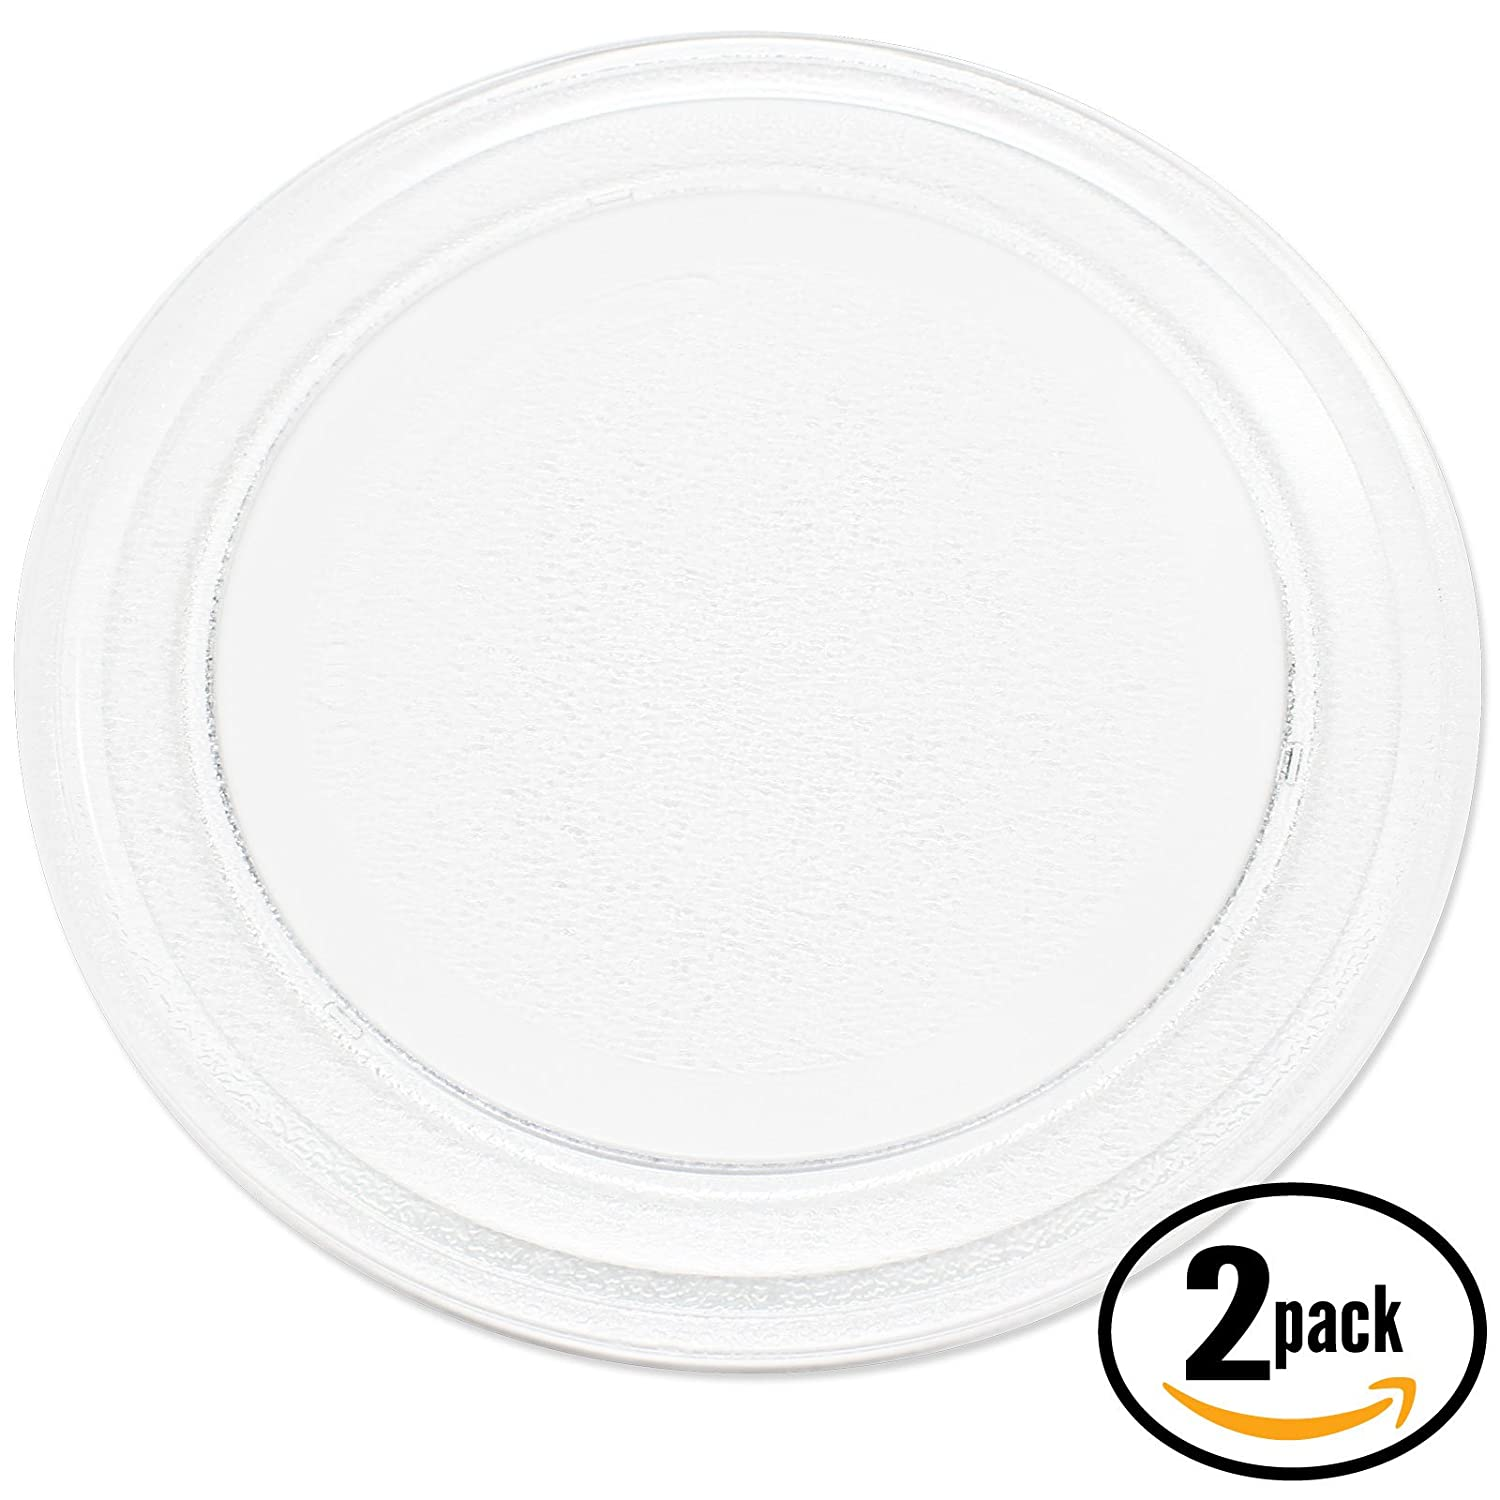 "2-Pack Replacement Emerson MW8781SD Microwave Glass Plate - Compatible Emerson 3390W1A035 Microwave Glass Turntable Tray - 9 5/8"" (245 mm)"